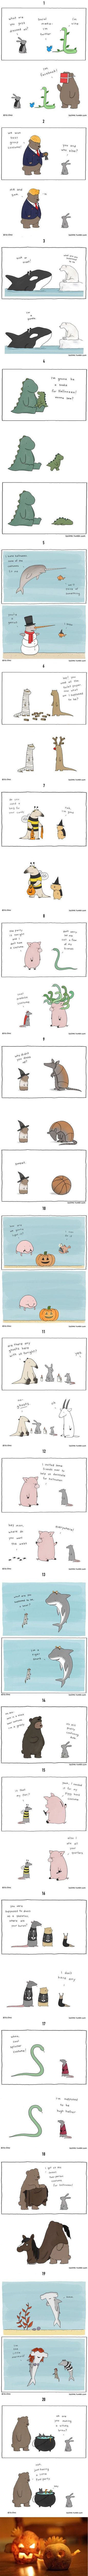 Incredibly Cute Comics Shows How Animals Celebrate Halloween (By Liz Climo)